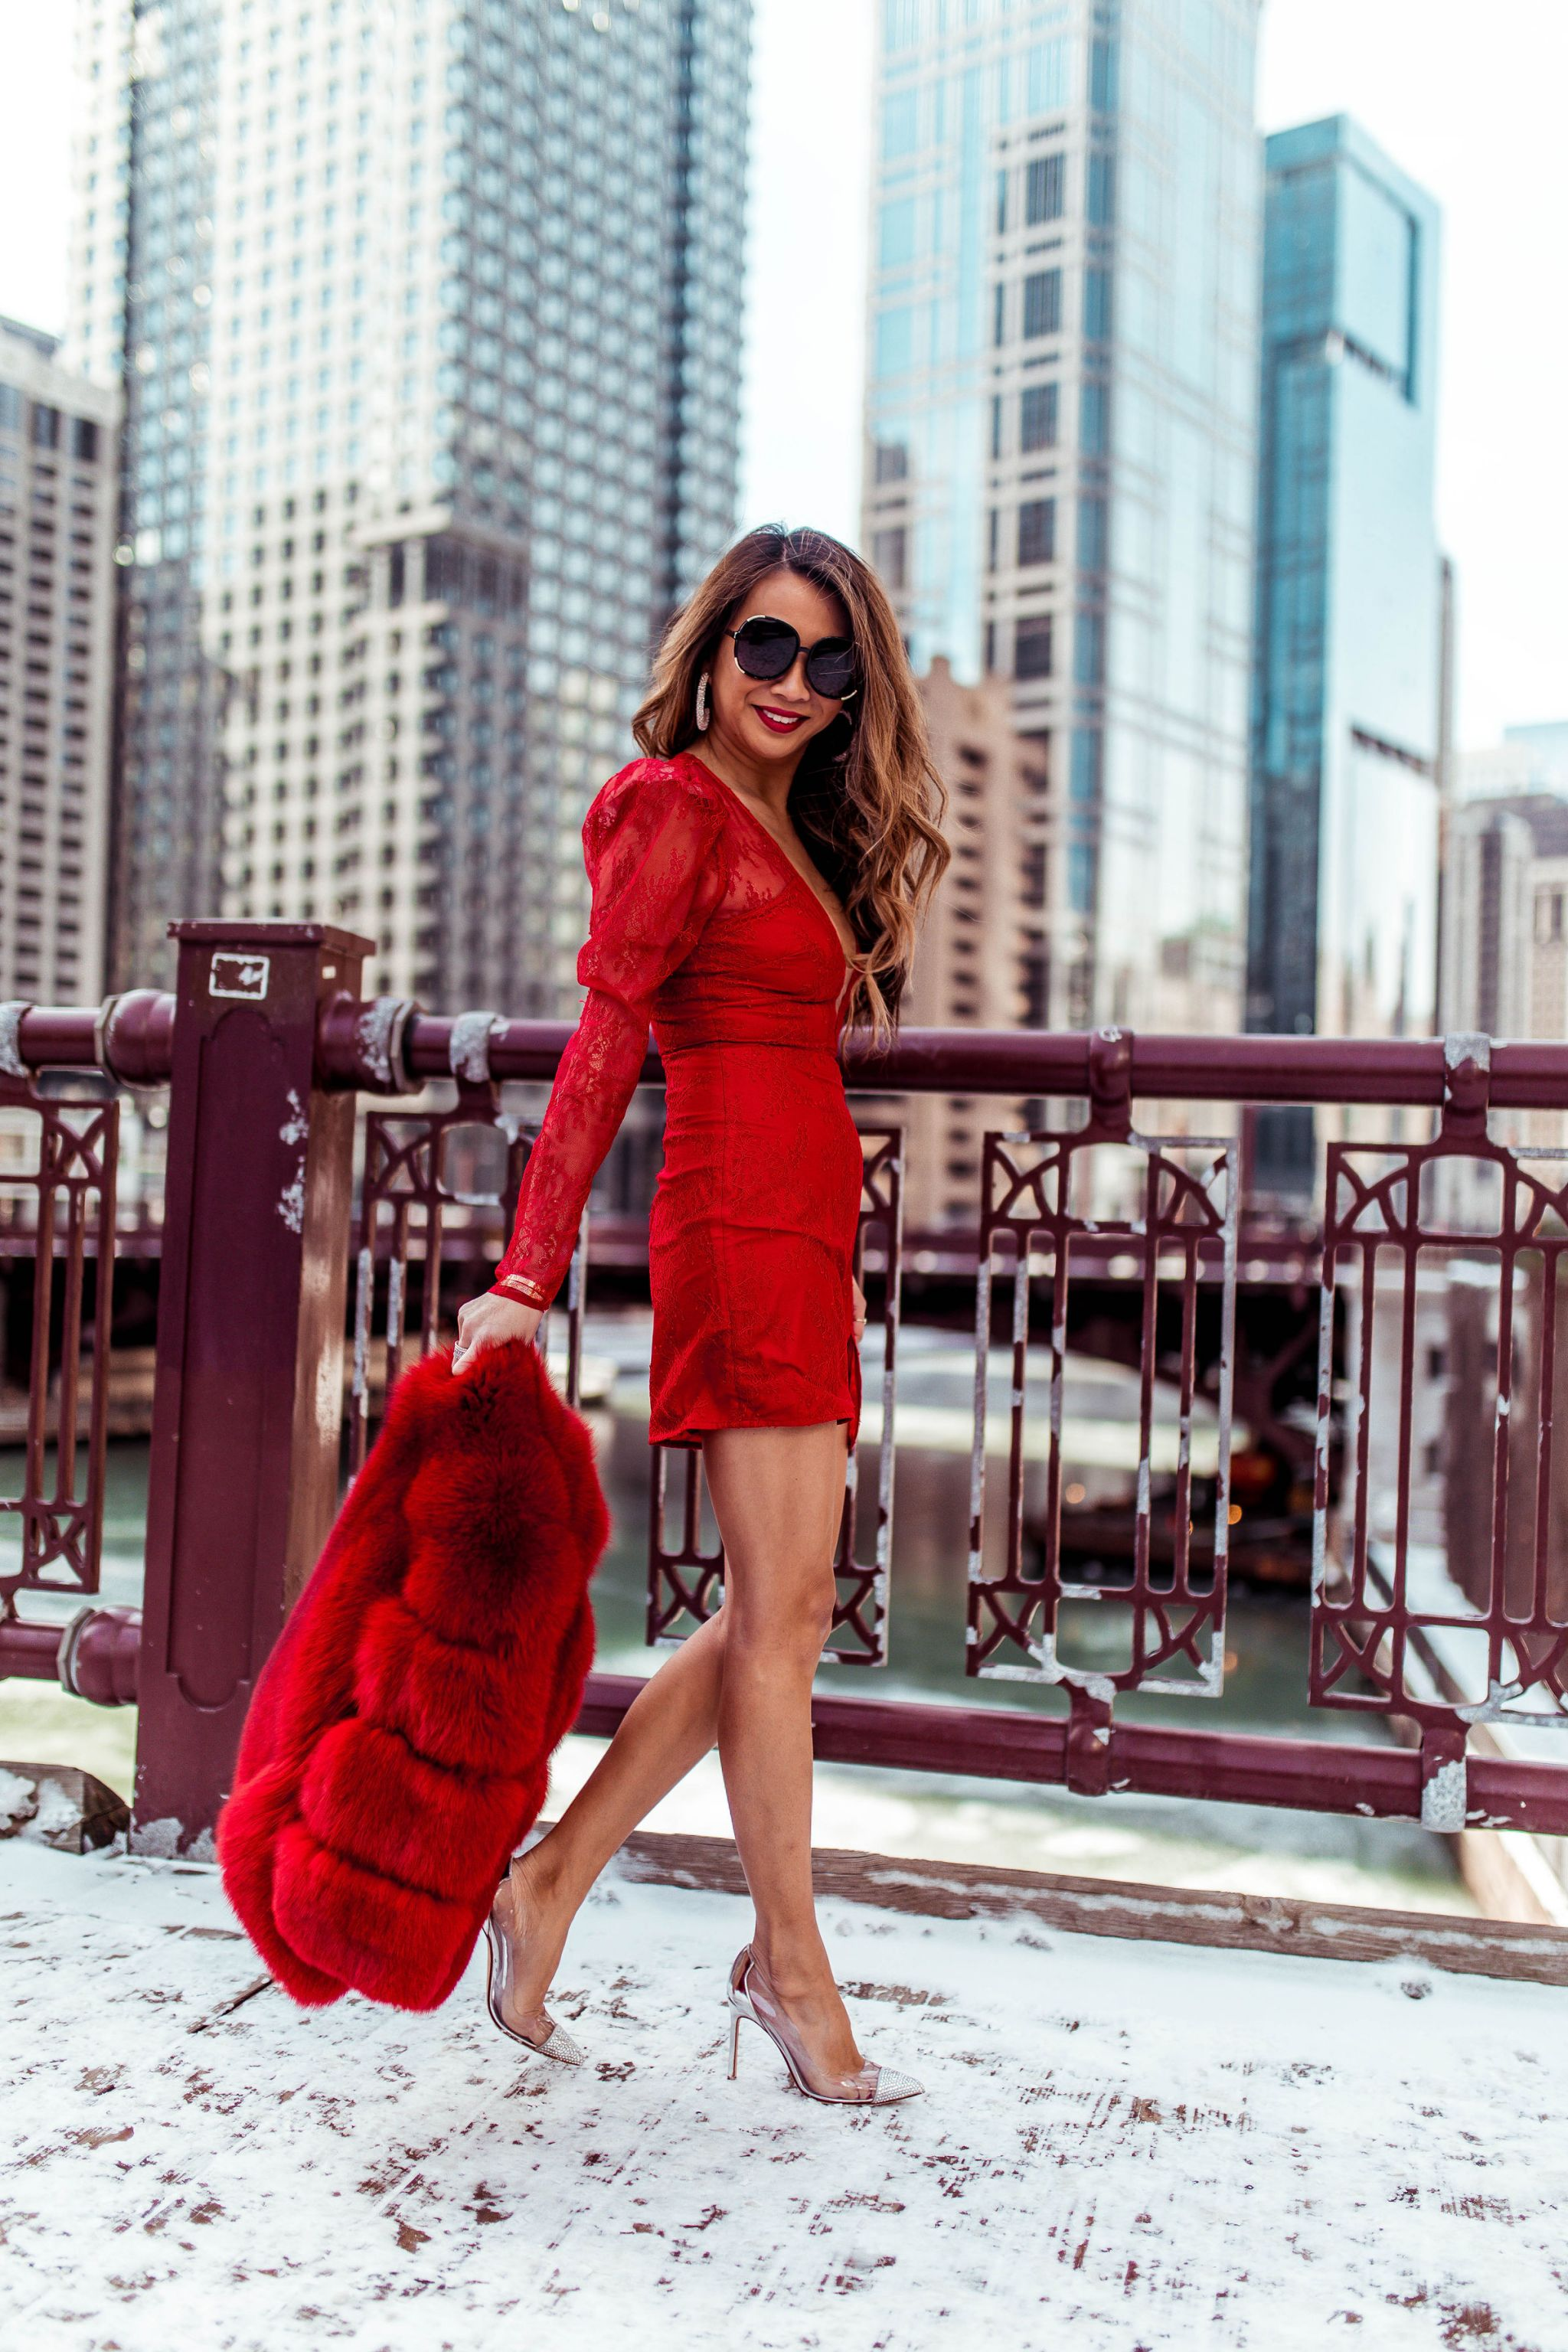 Best Date Night Spots in Chicago, Chicago Best Restaurants, Michael Costello Dress, Best Red Dress, Chicago Fashion Blogger, Chicago Riverwalk, Vday style, Jennifer Worman, Best spot to take photos in Chicago, Revolve Red Dress